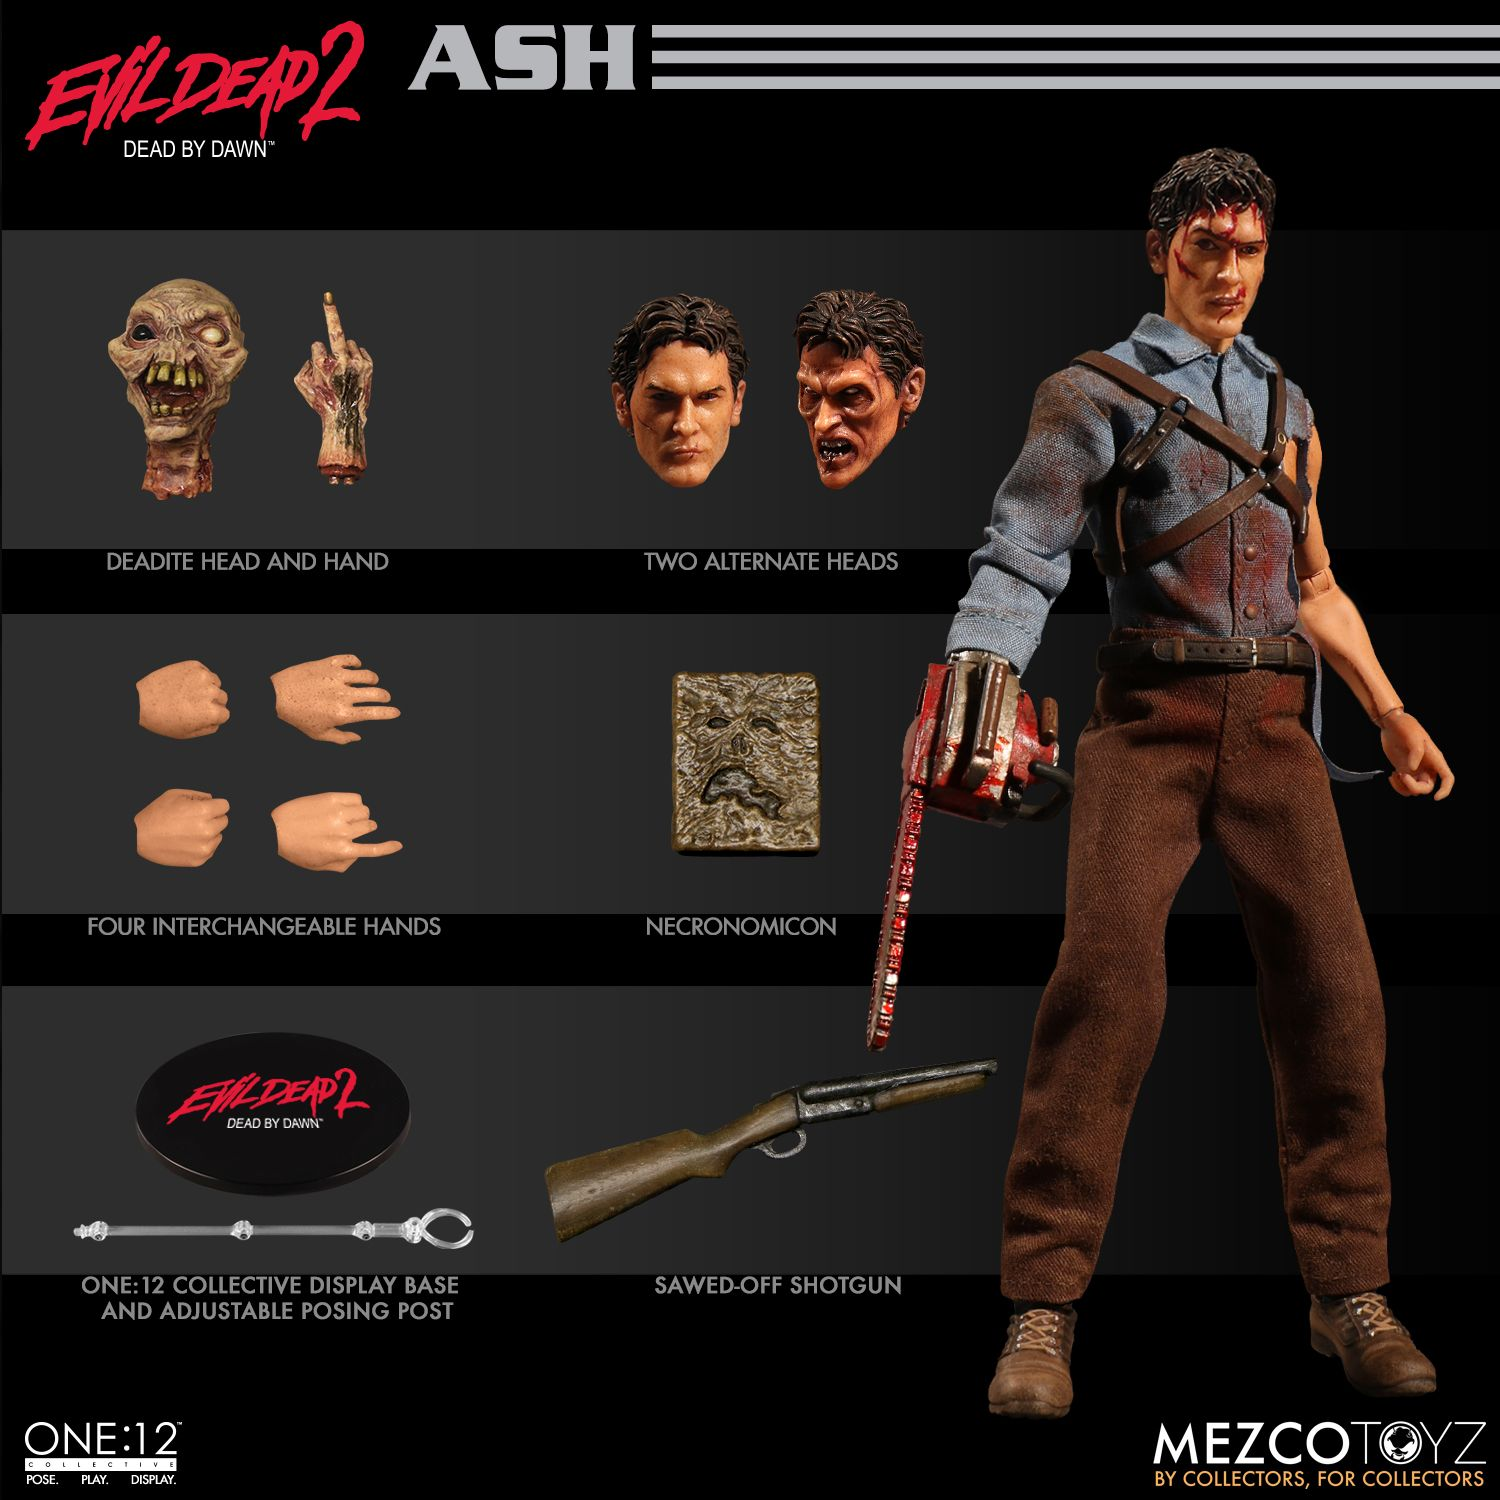 """MEZCO TOYZ ONE:12 COLLECTIVE EVIL DEAD 2 ASH 6/"""" ACTION FIGURE BRAND NEW IN HAND"""